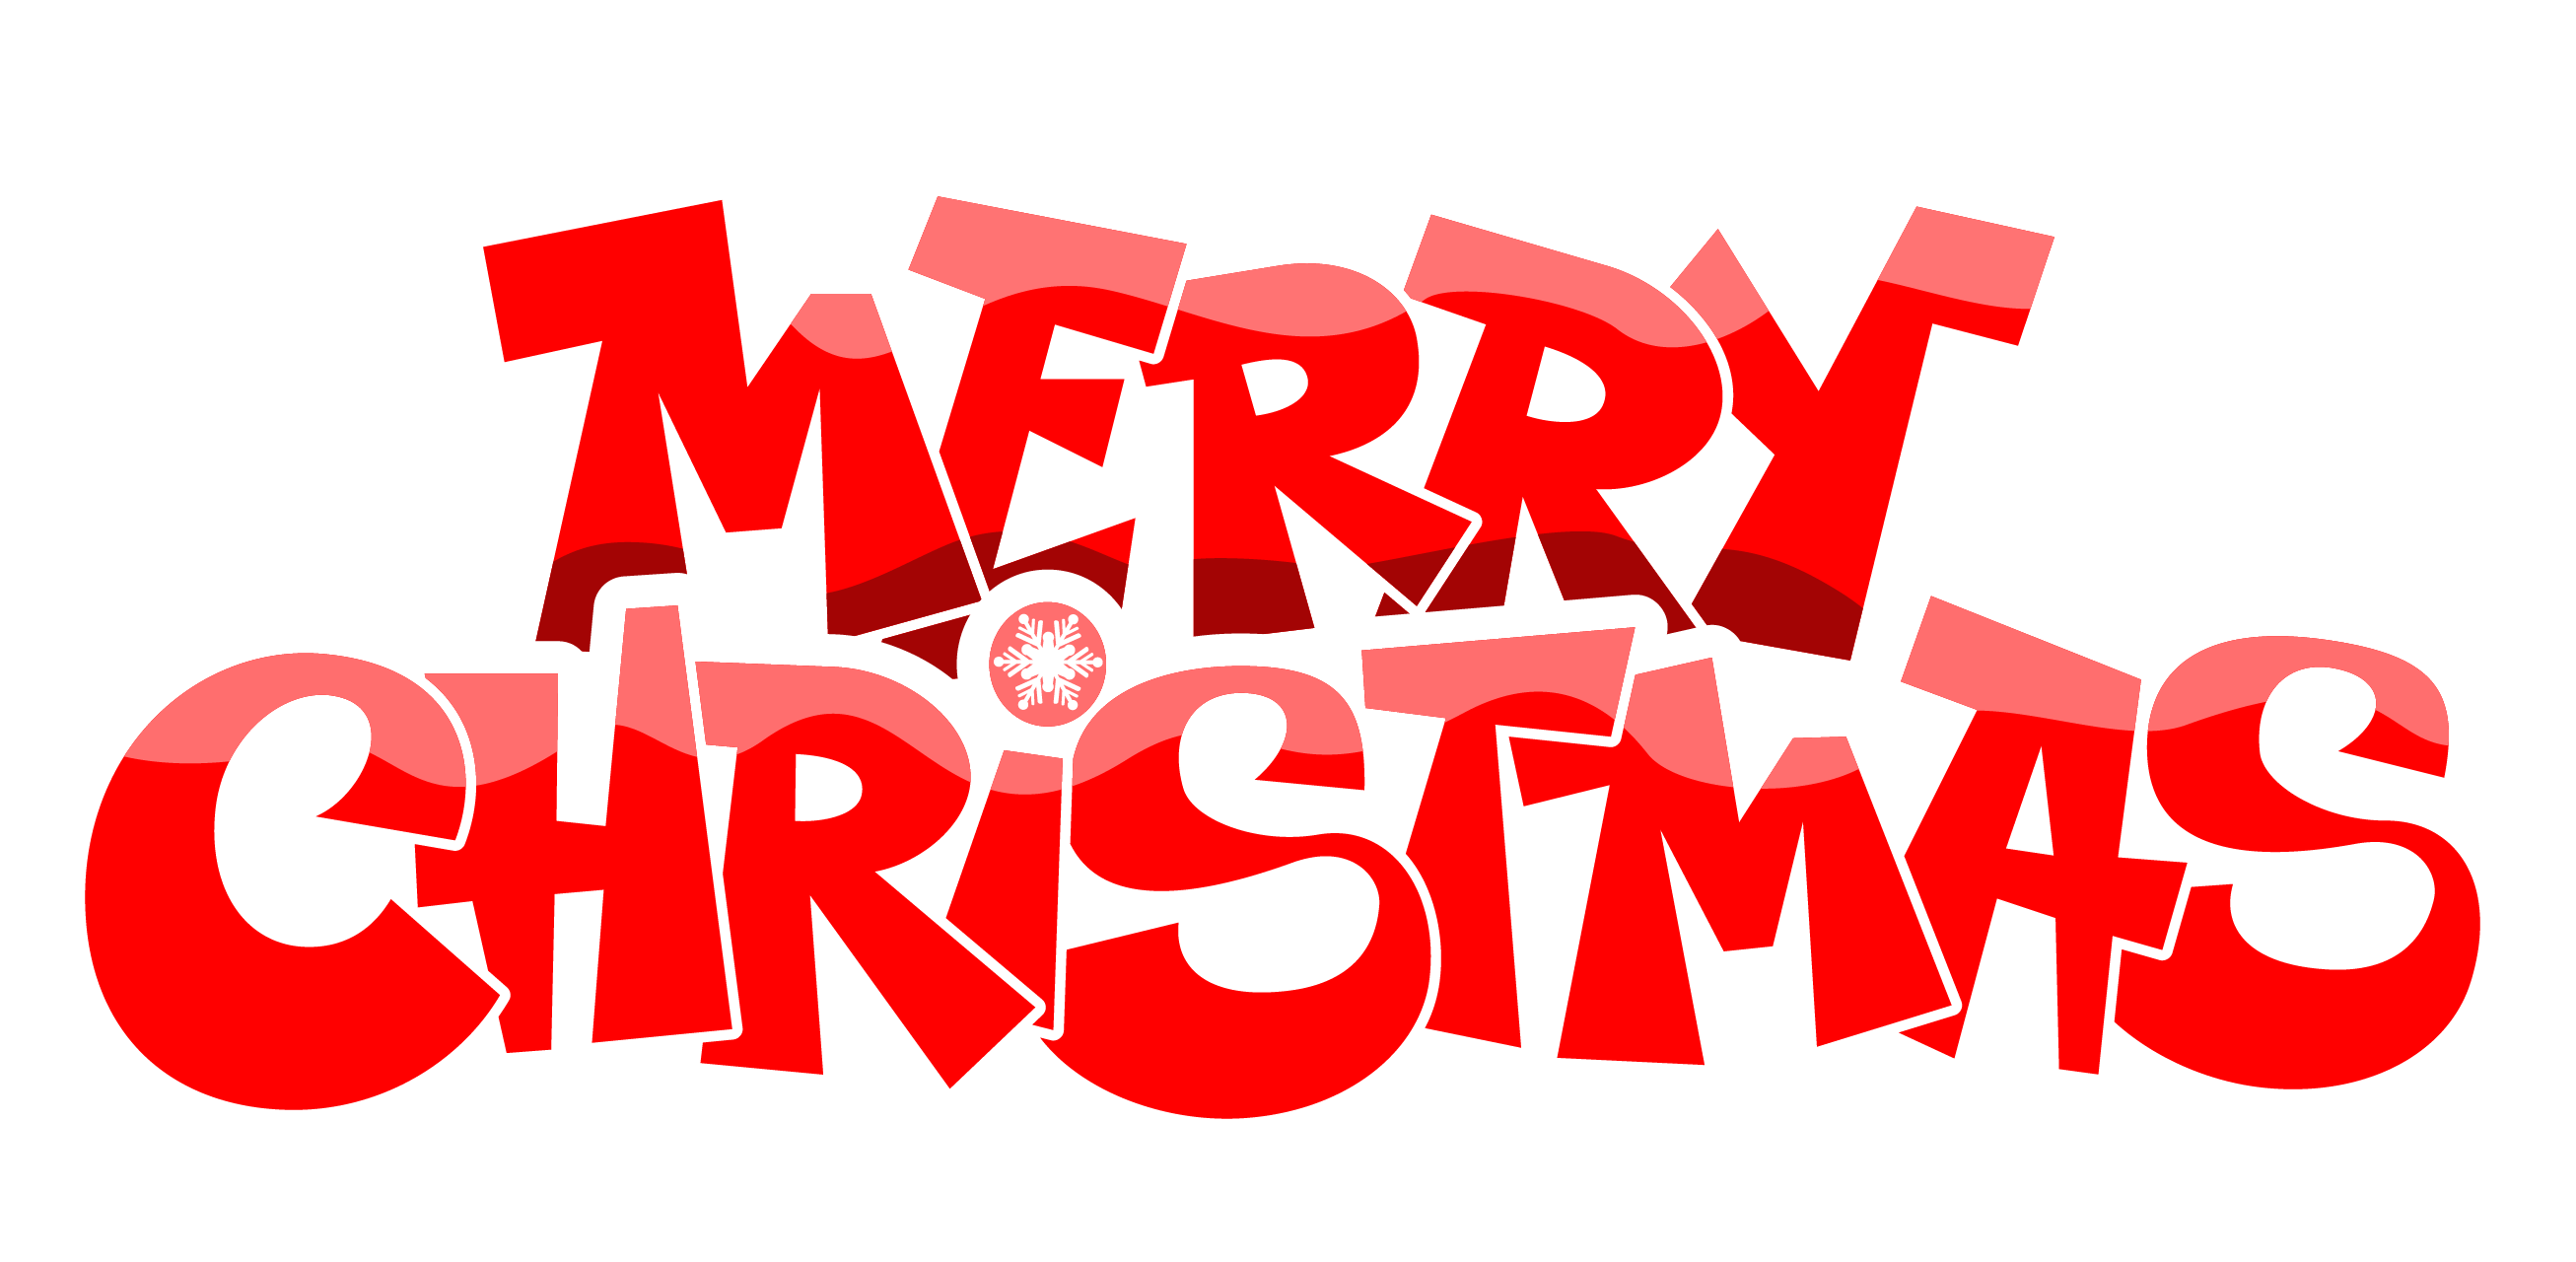 Merry Christmas Text Transparent - Family Day PNG HD Free